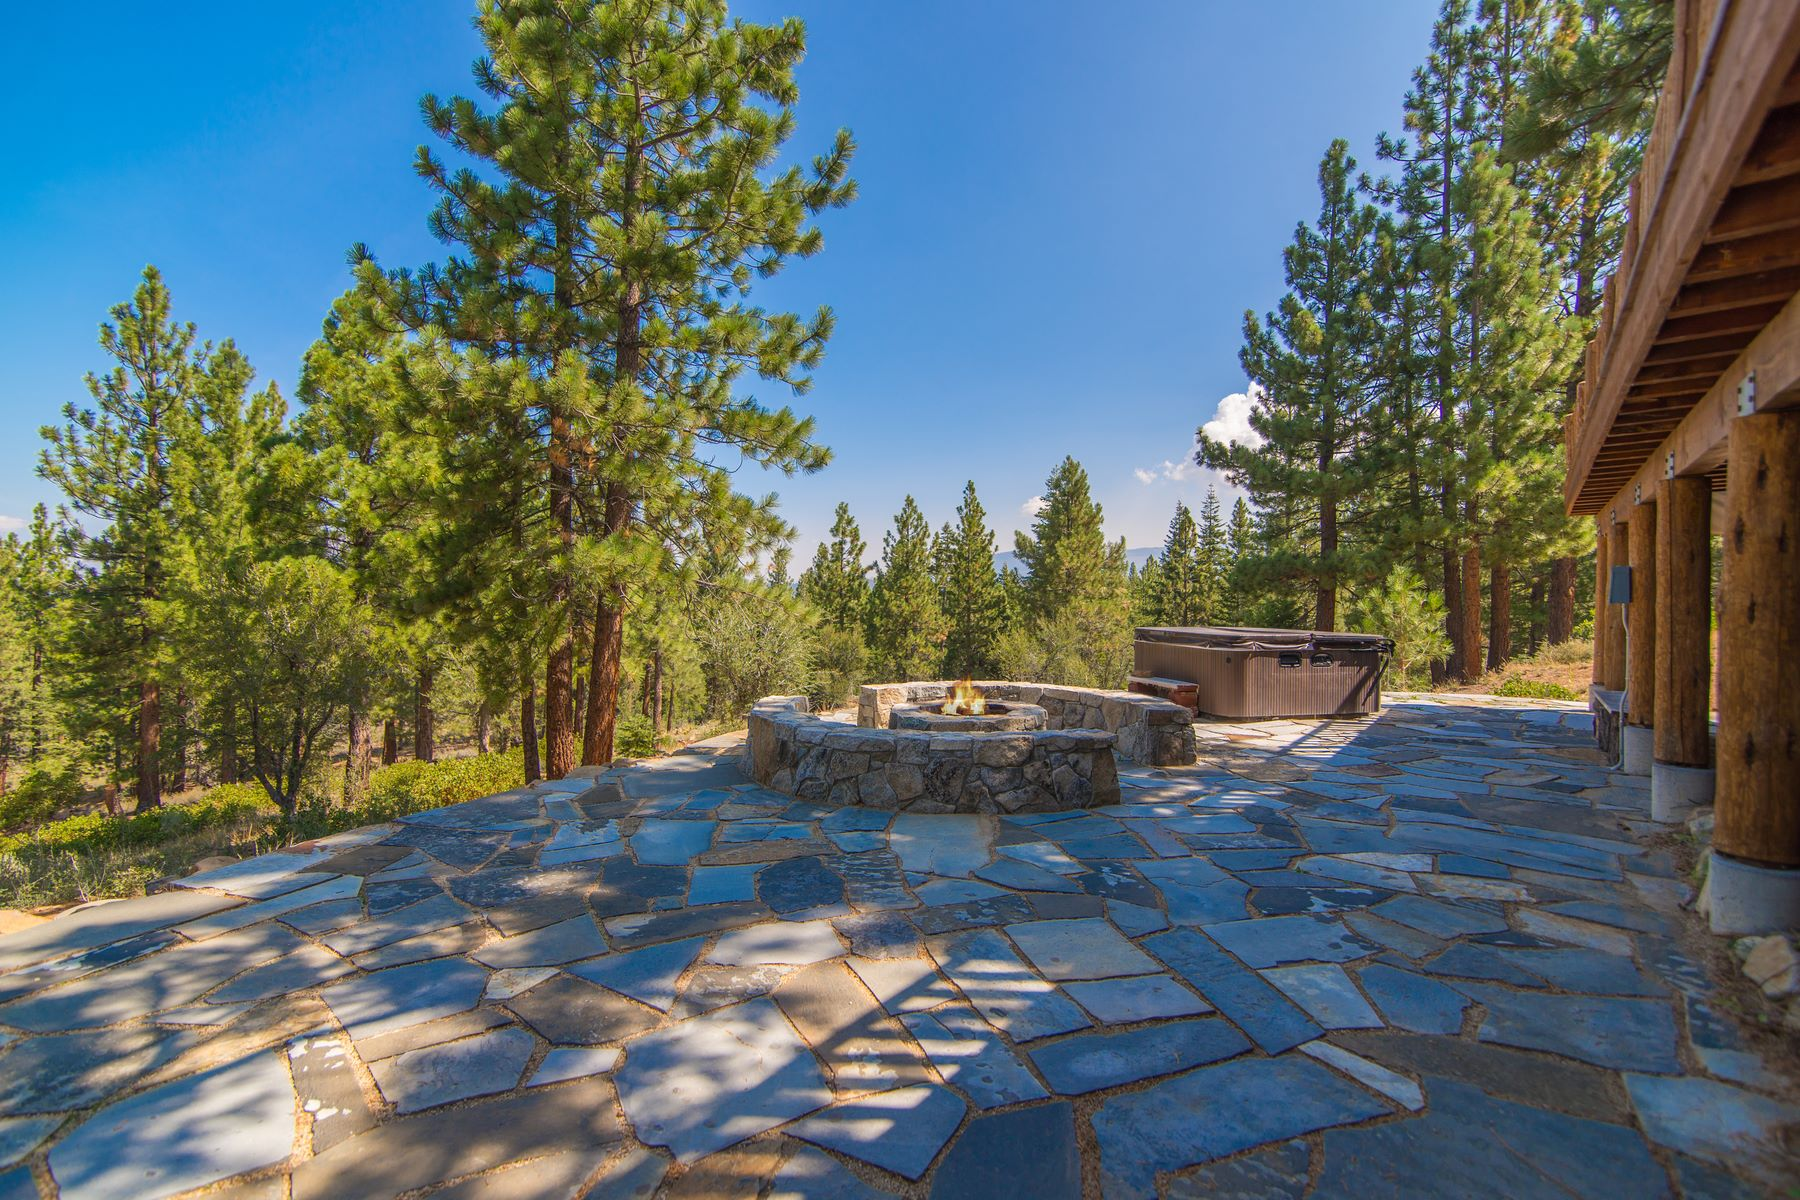 Additional photo for property listing at 13834 Martis Peak Road,Truckee, CA 13834 Martis Peak Road Truckee, California 96161 United States